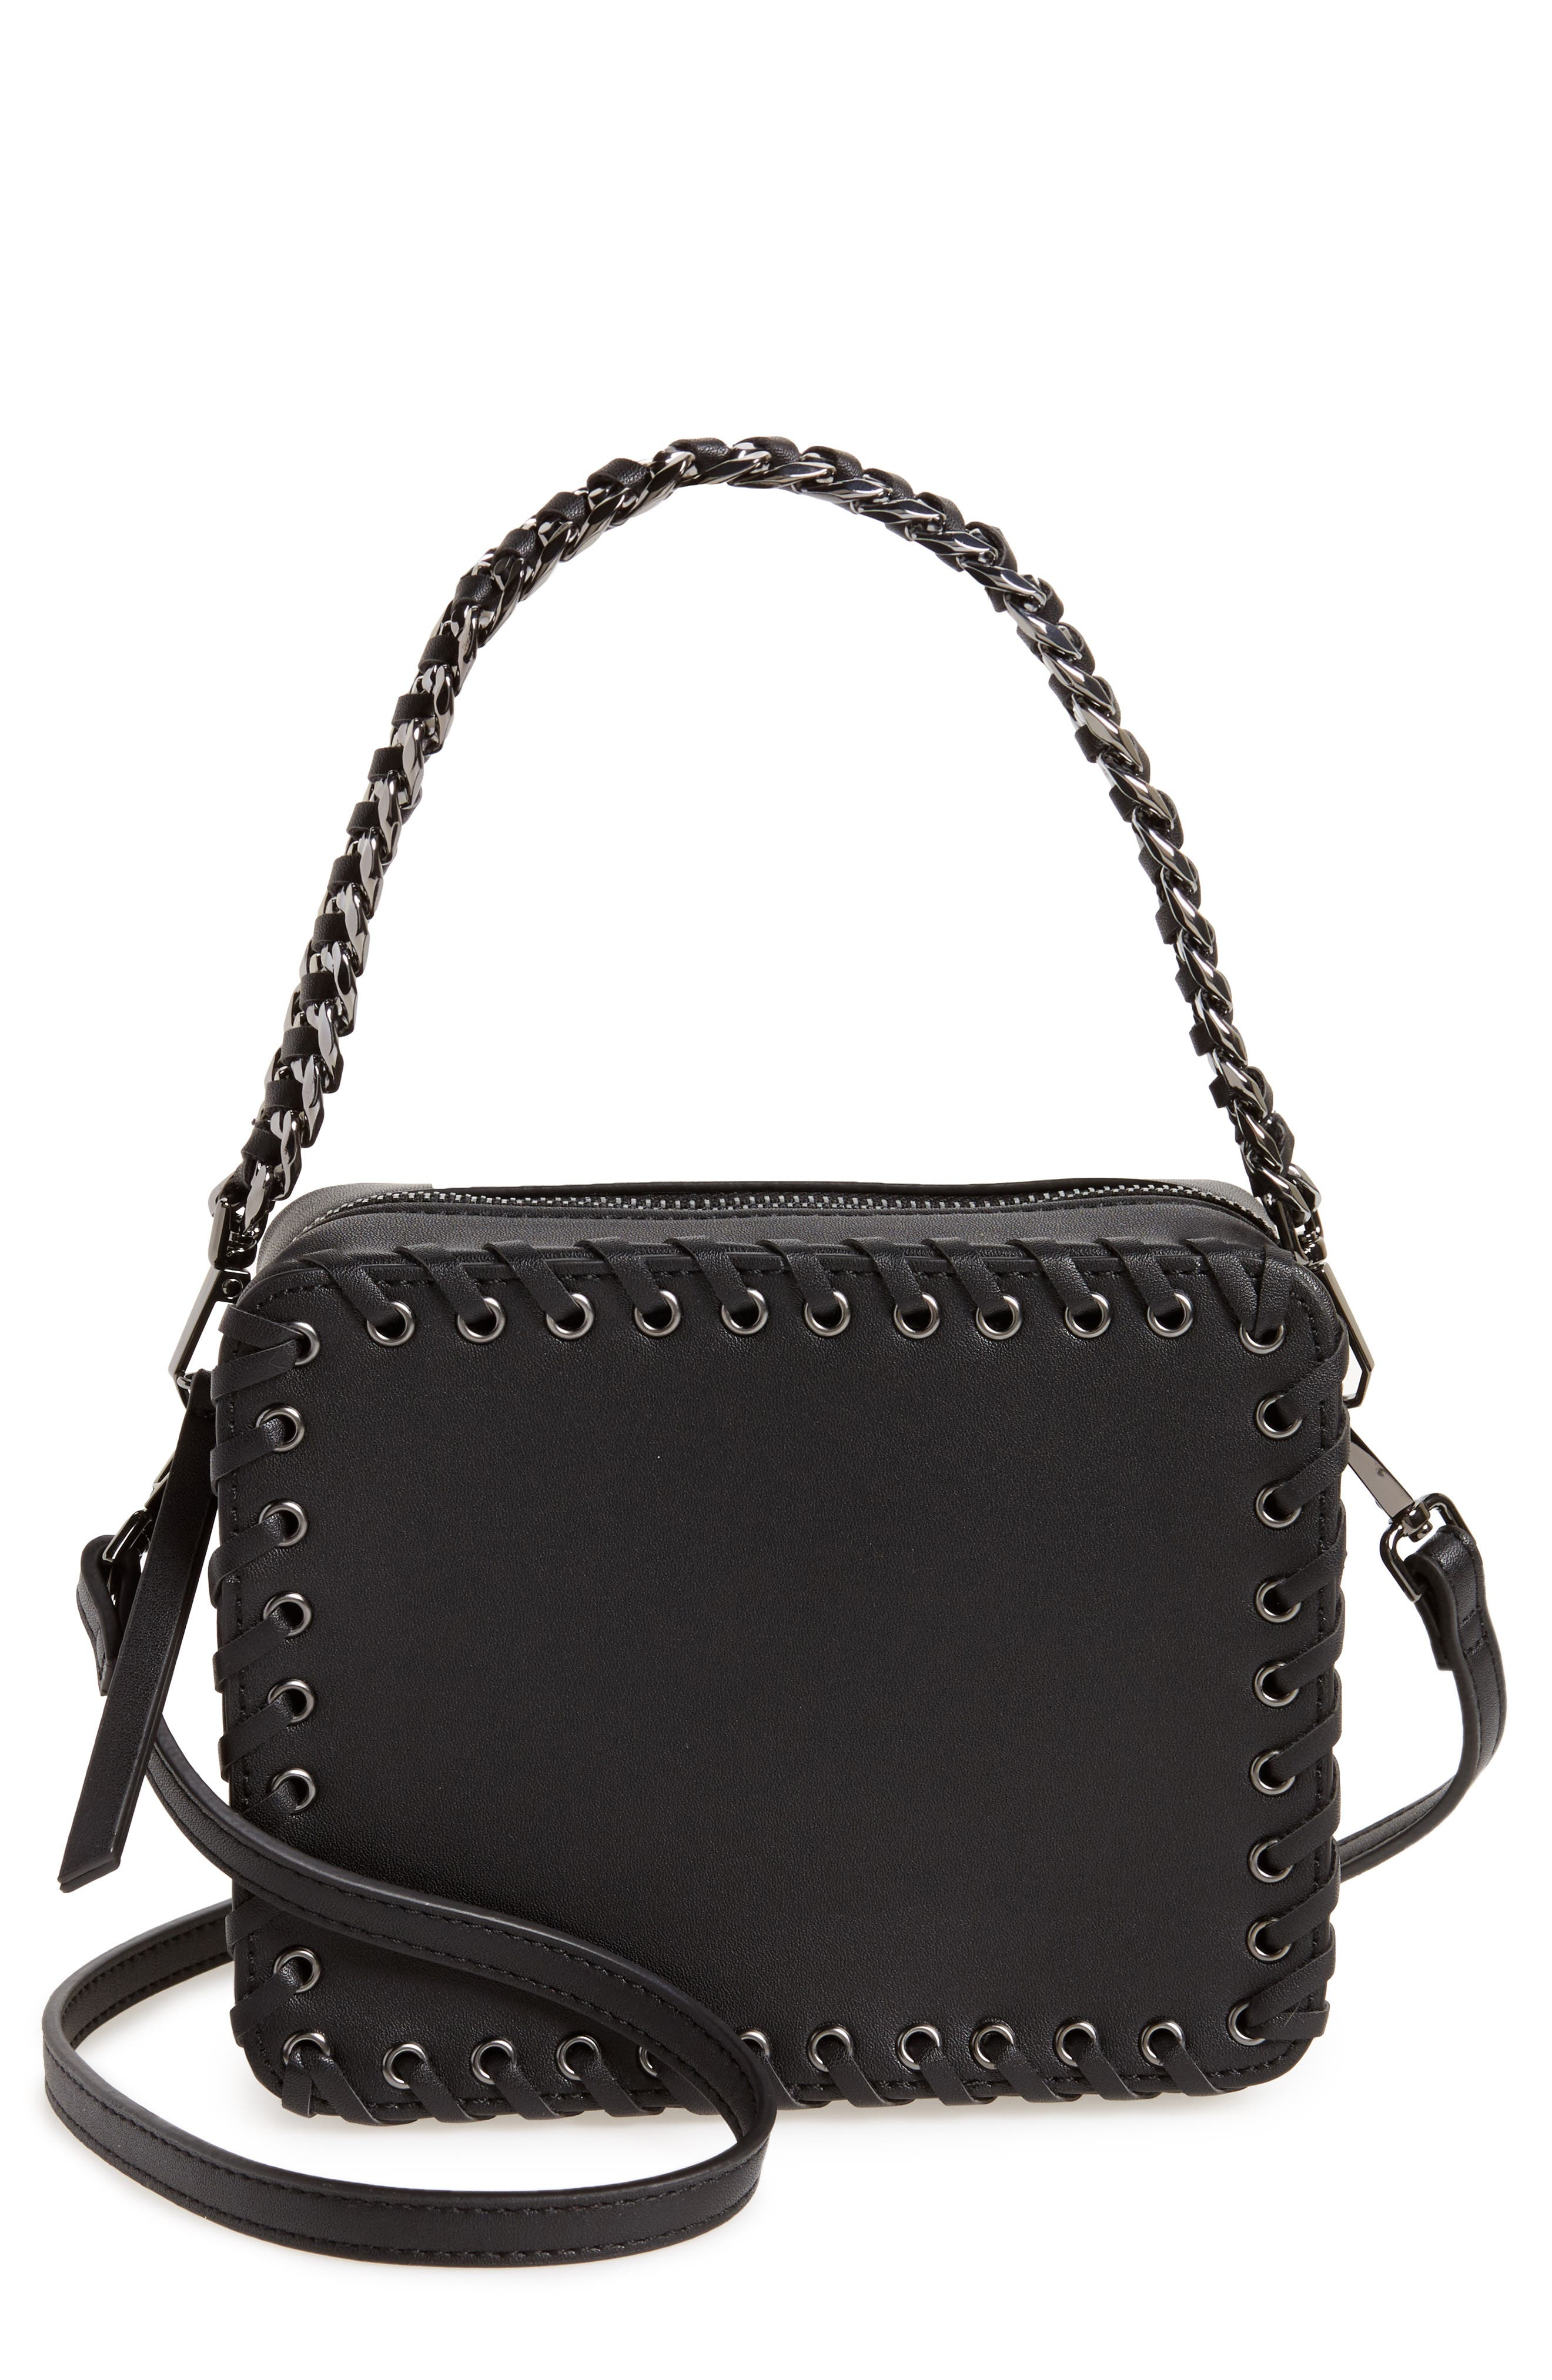 Rogue Whipstitch Faux Leather Crossbody Bag,                             Main thumbnail 1, color,                             001